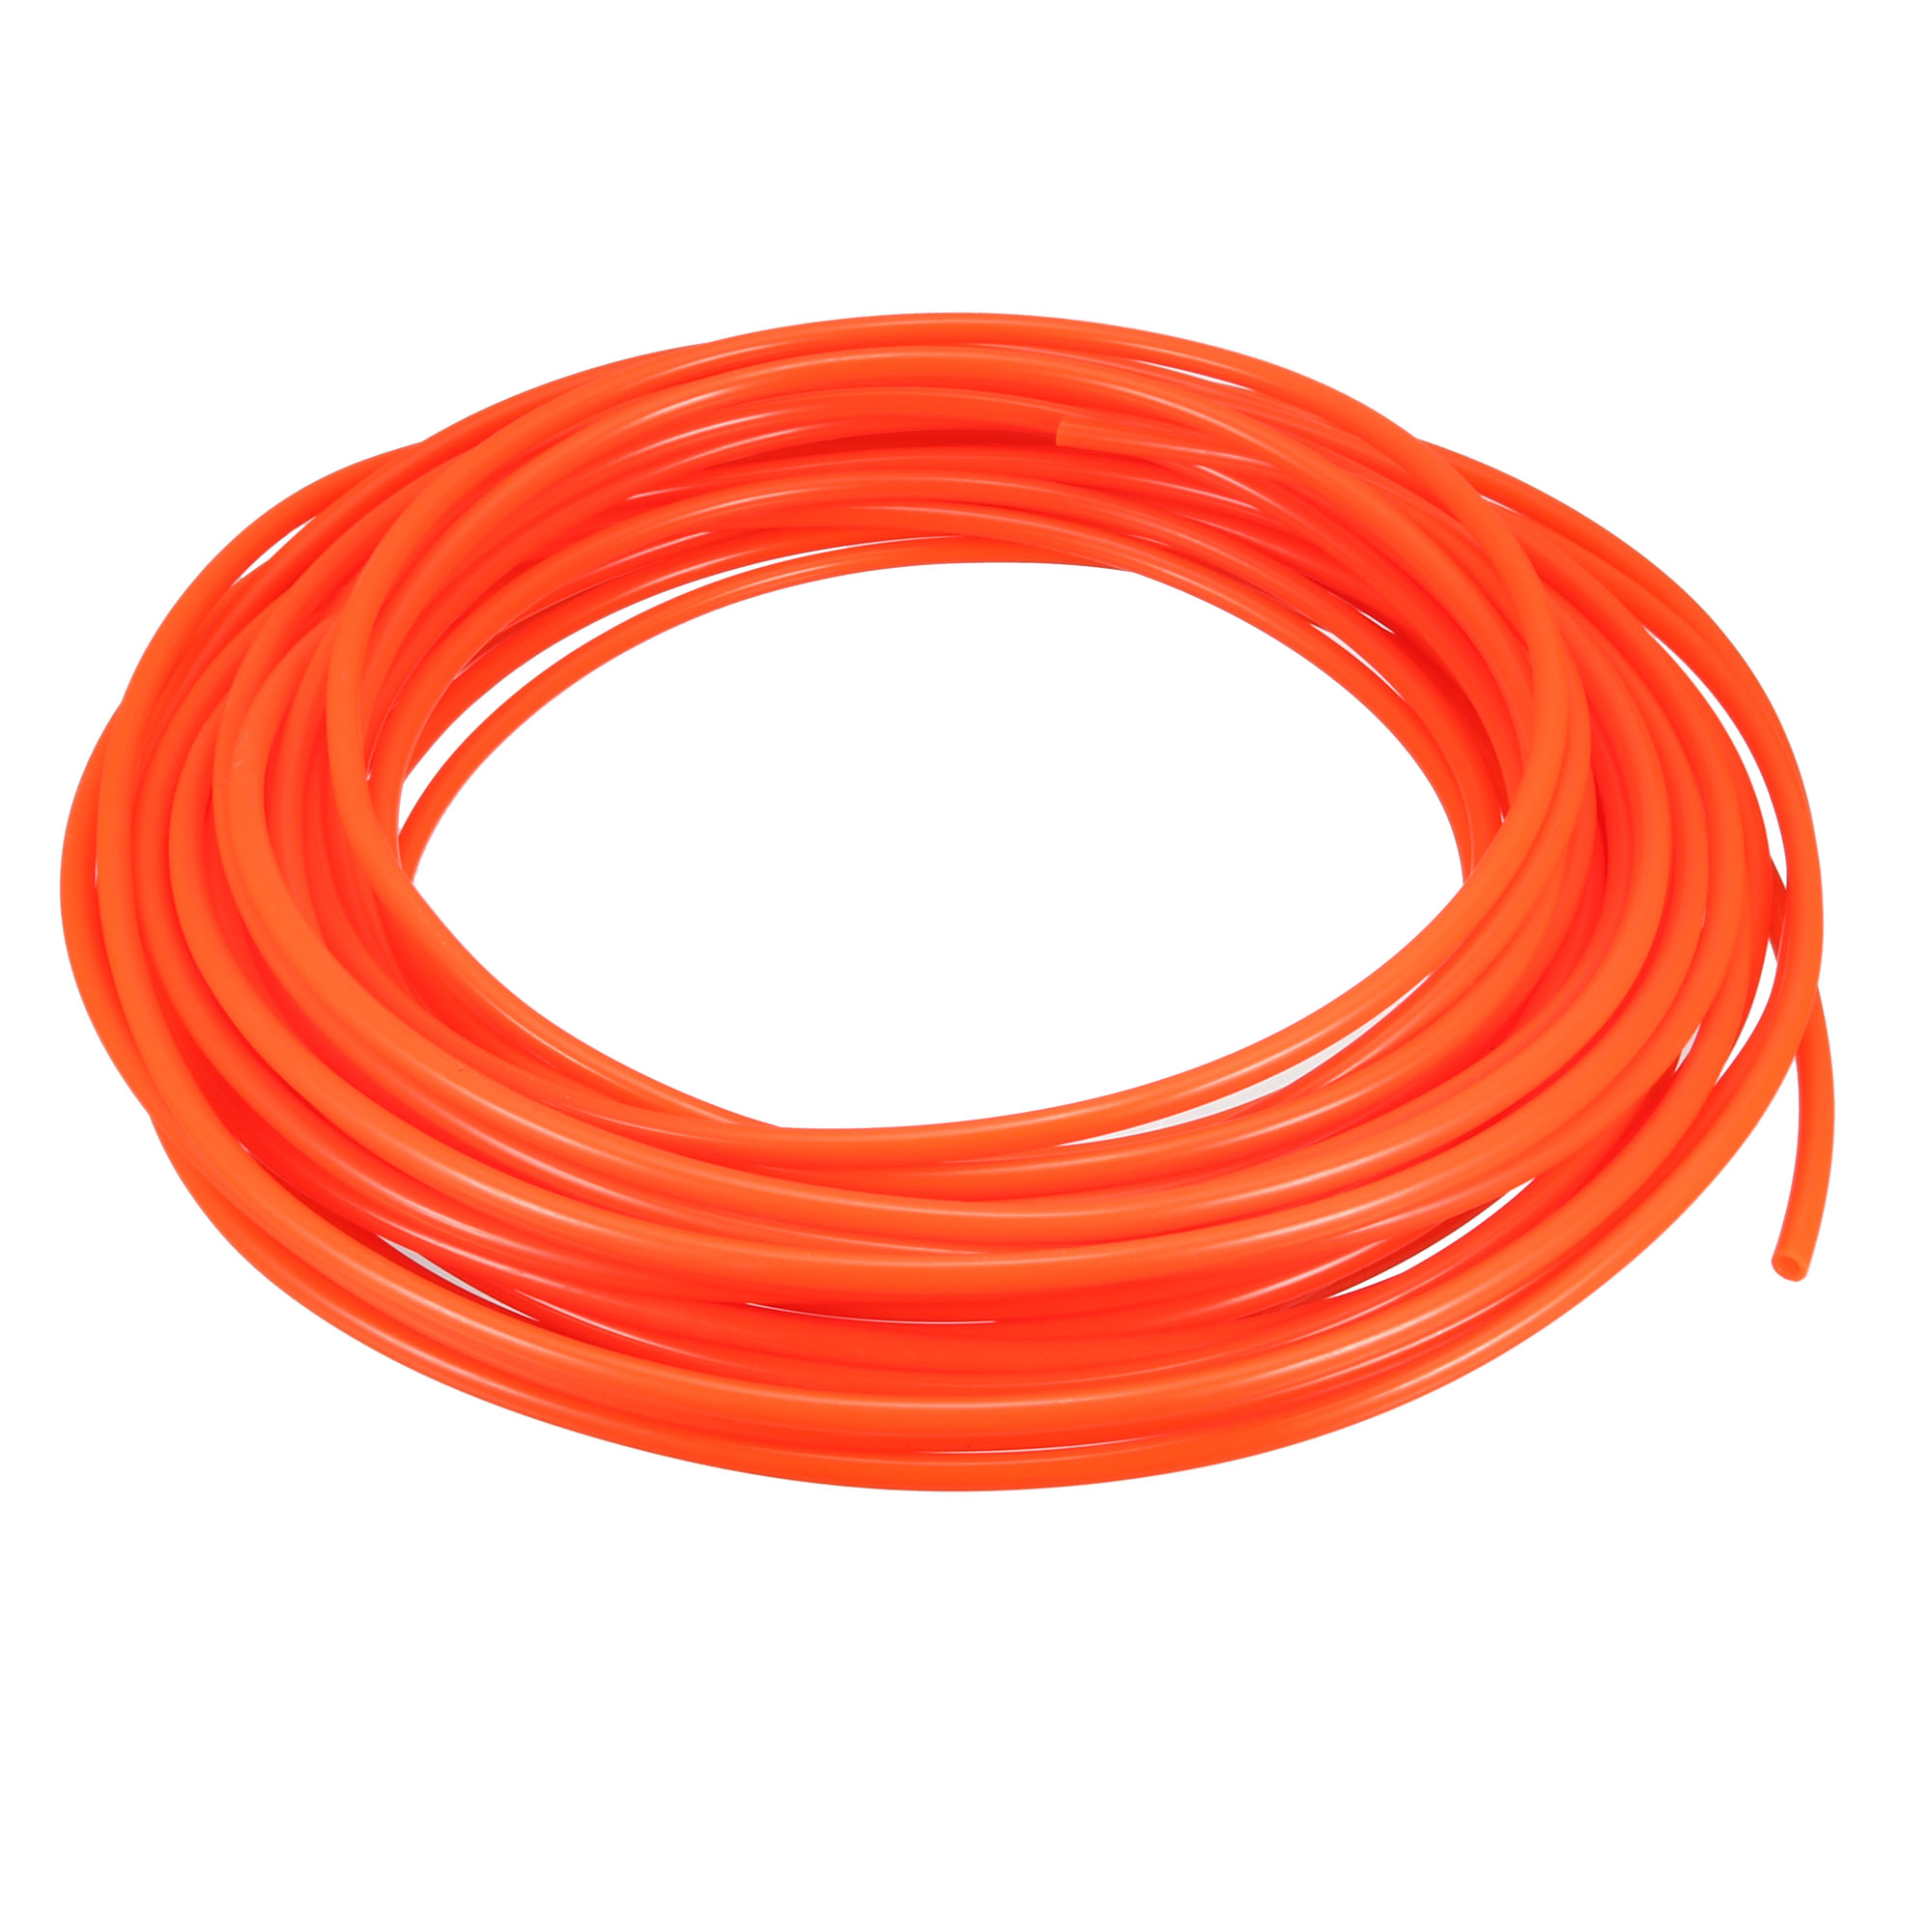 Orange 4mm OD 2.5mm ID 15 Meter Pneumatic PU Air Tube Hose